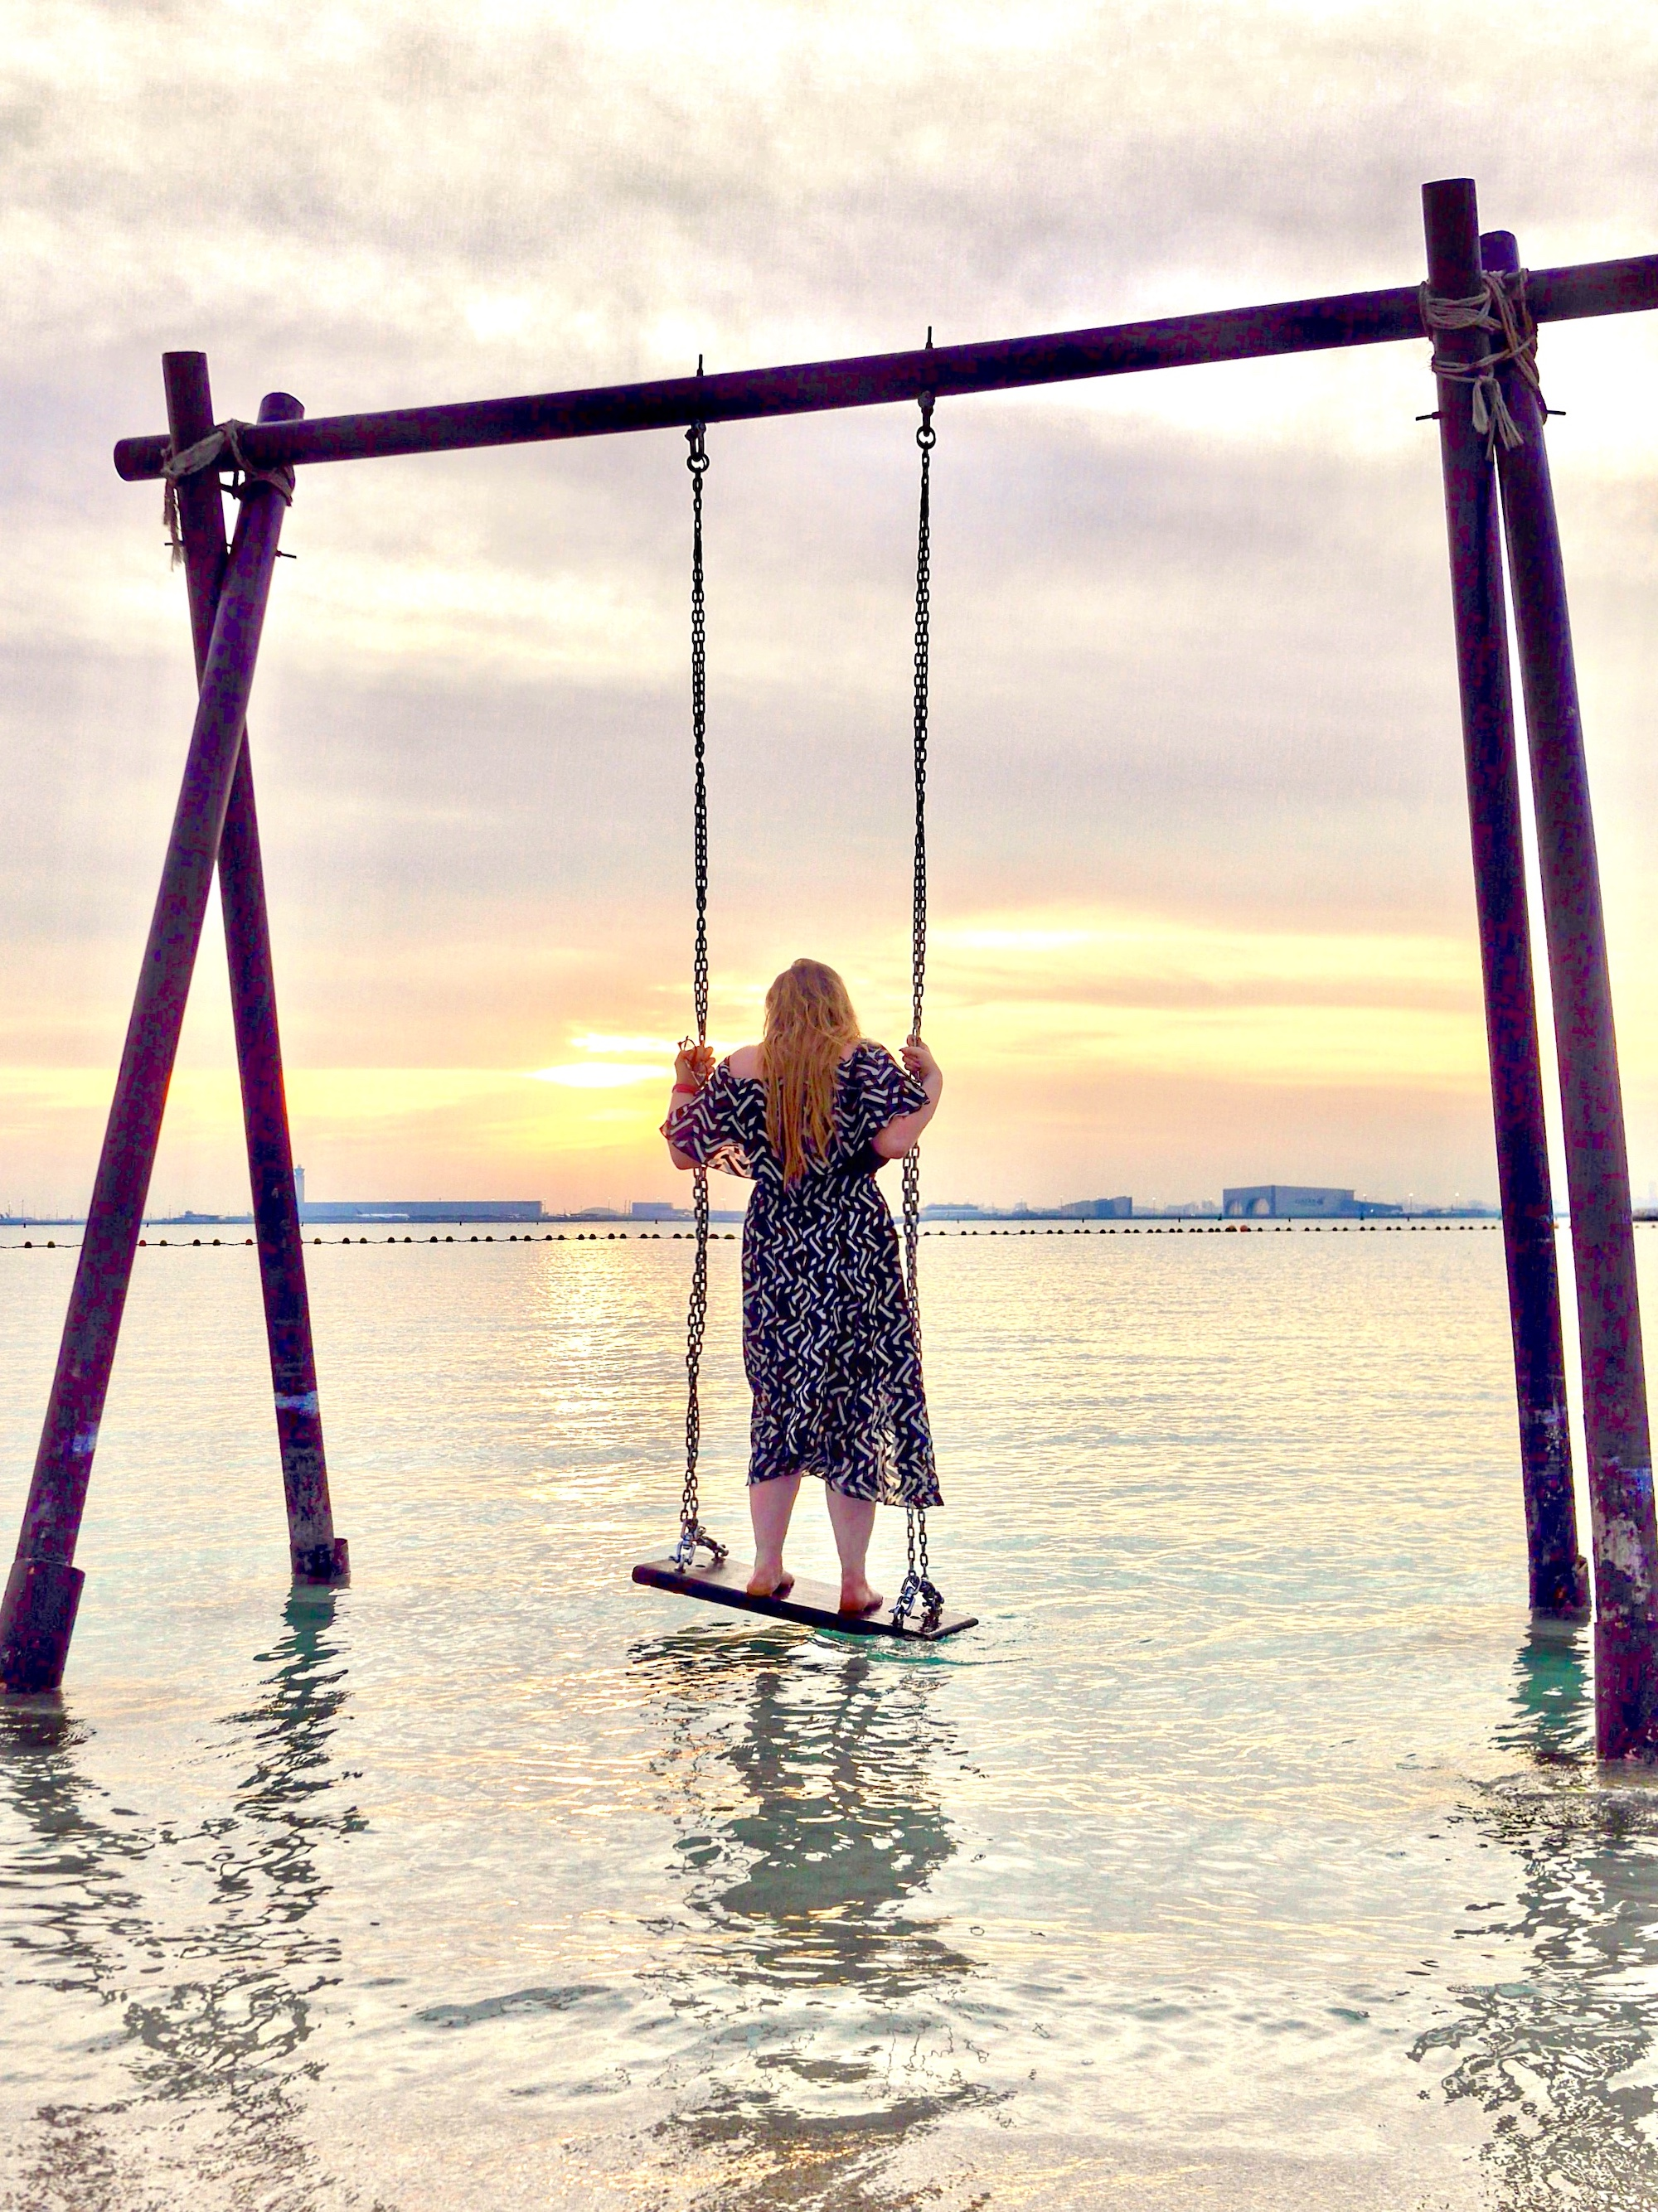 Maldives of Qatar, Banana Island Sea Swing | Visit Qatar | Doha, the capital of Qatar is located in the Middle East and the World Cup 2022 location. Find out how I spent 4 days on my visit to Qatar | Travel Guide & Tips | Elle Blonde Luxury Lifestyle Destination Blog